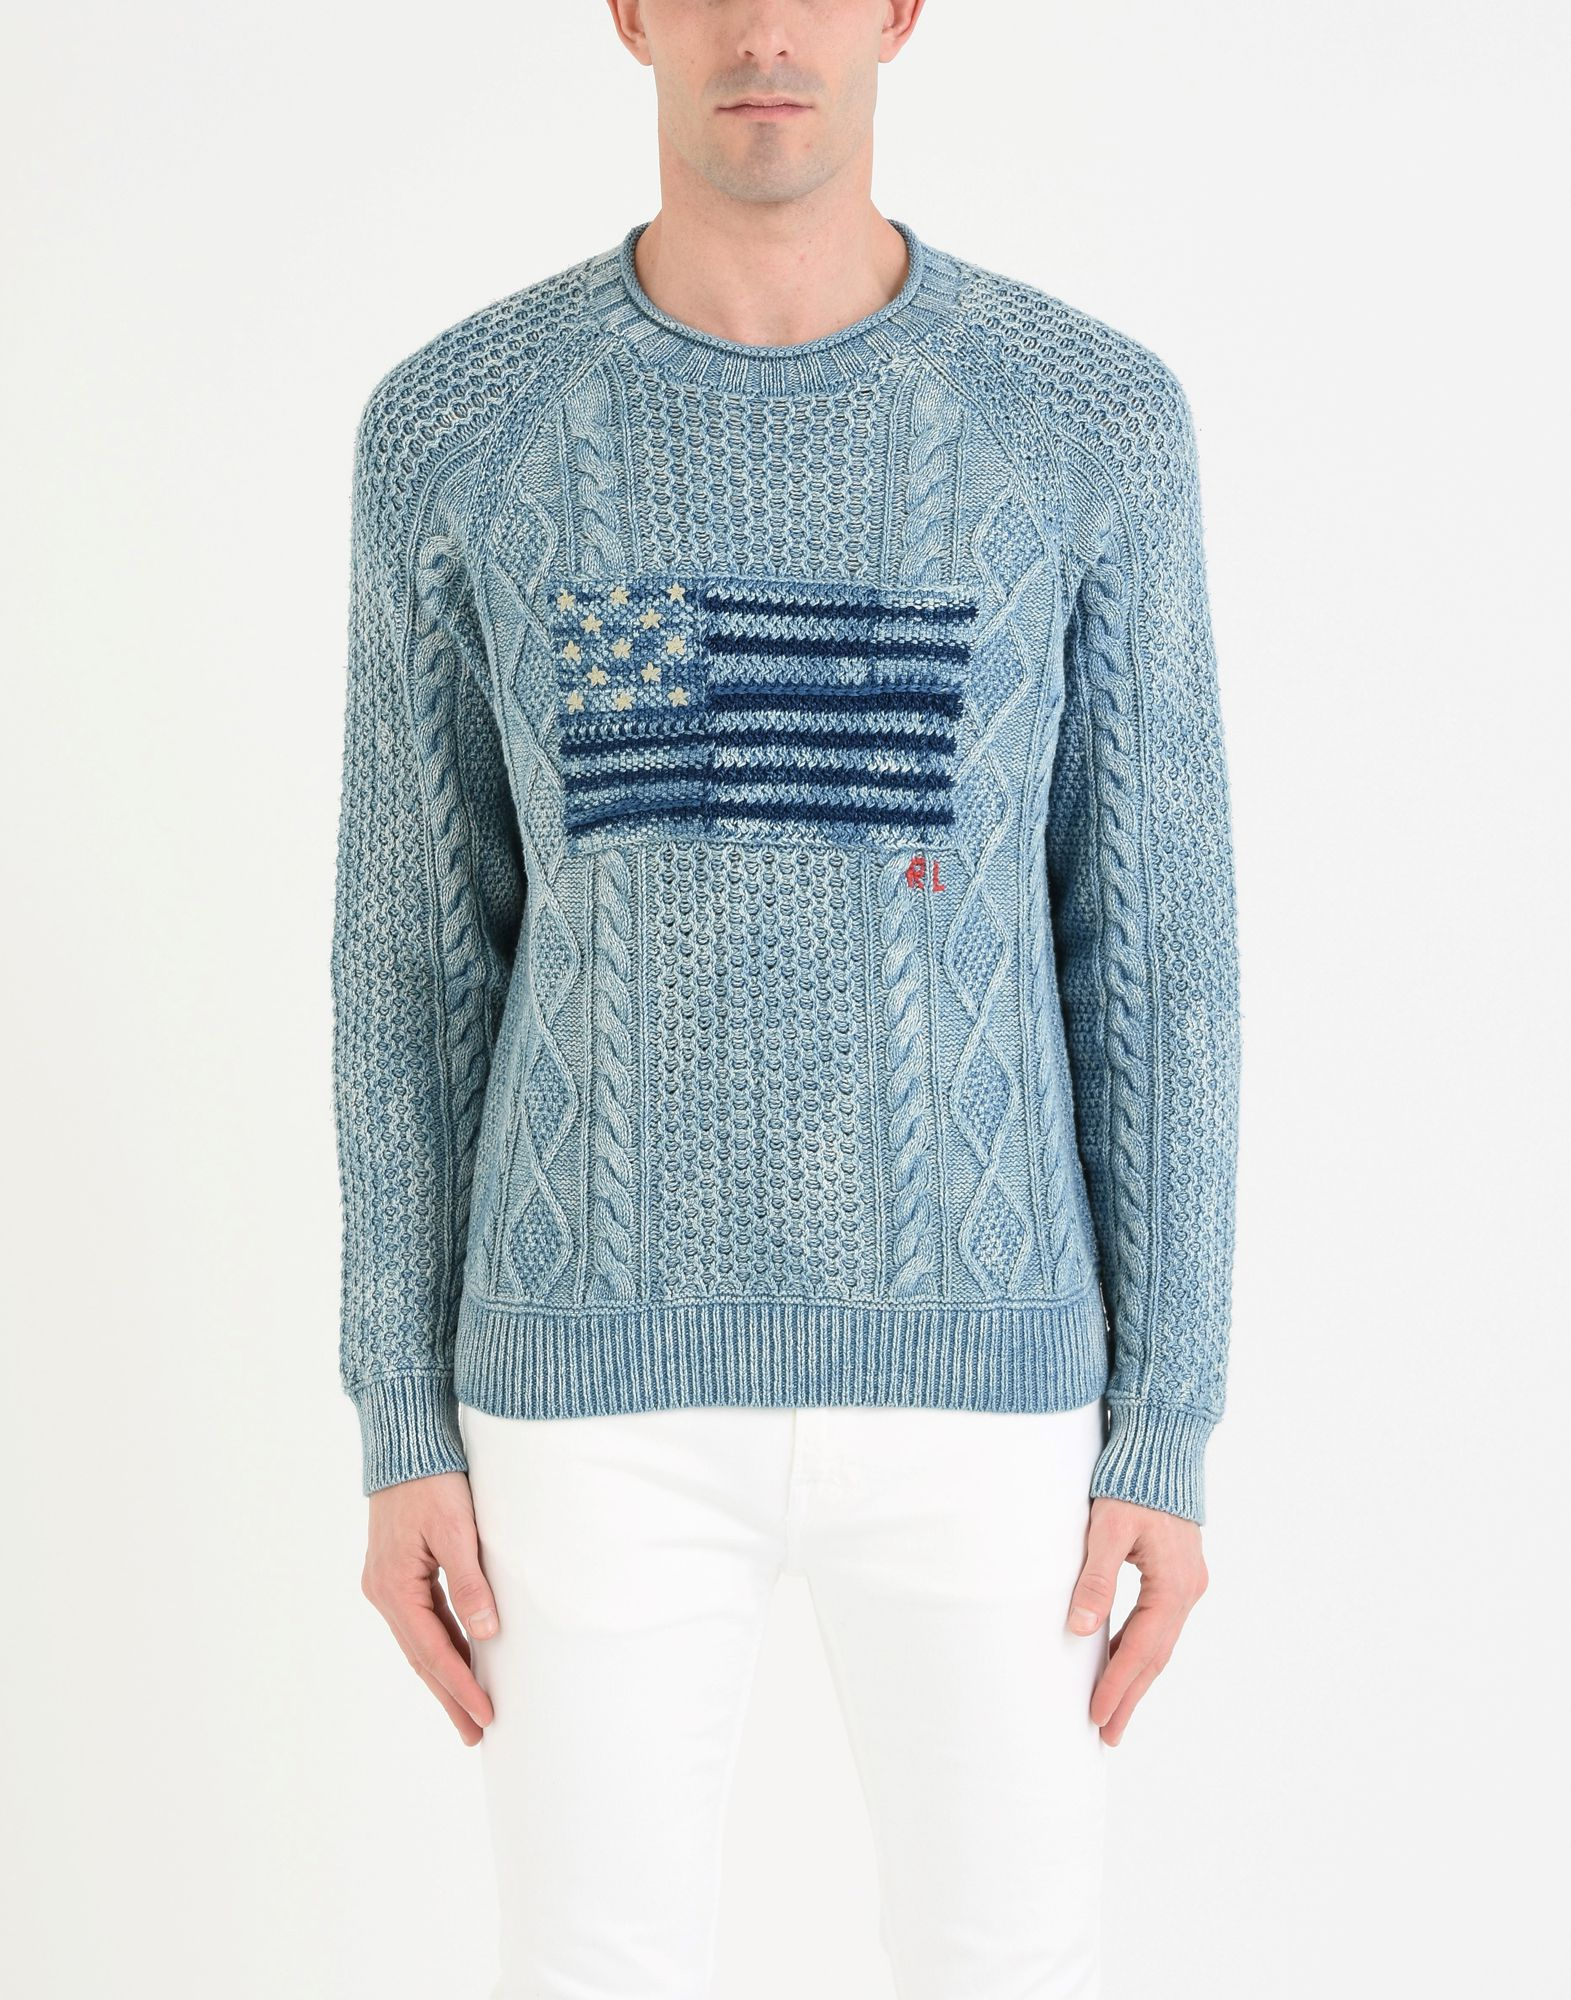 Pullover Polo Ralph Lauren The Uomo Iconic American Flag Sweater - Uomo The - 39862301PA 32aae9